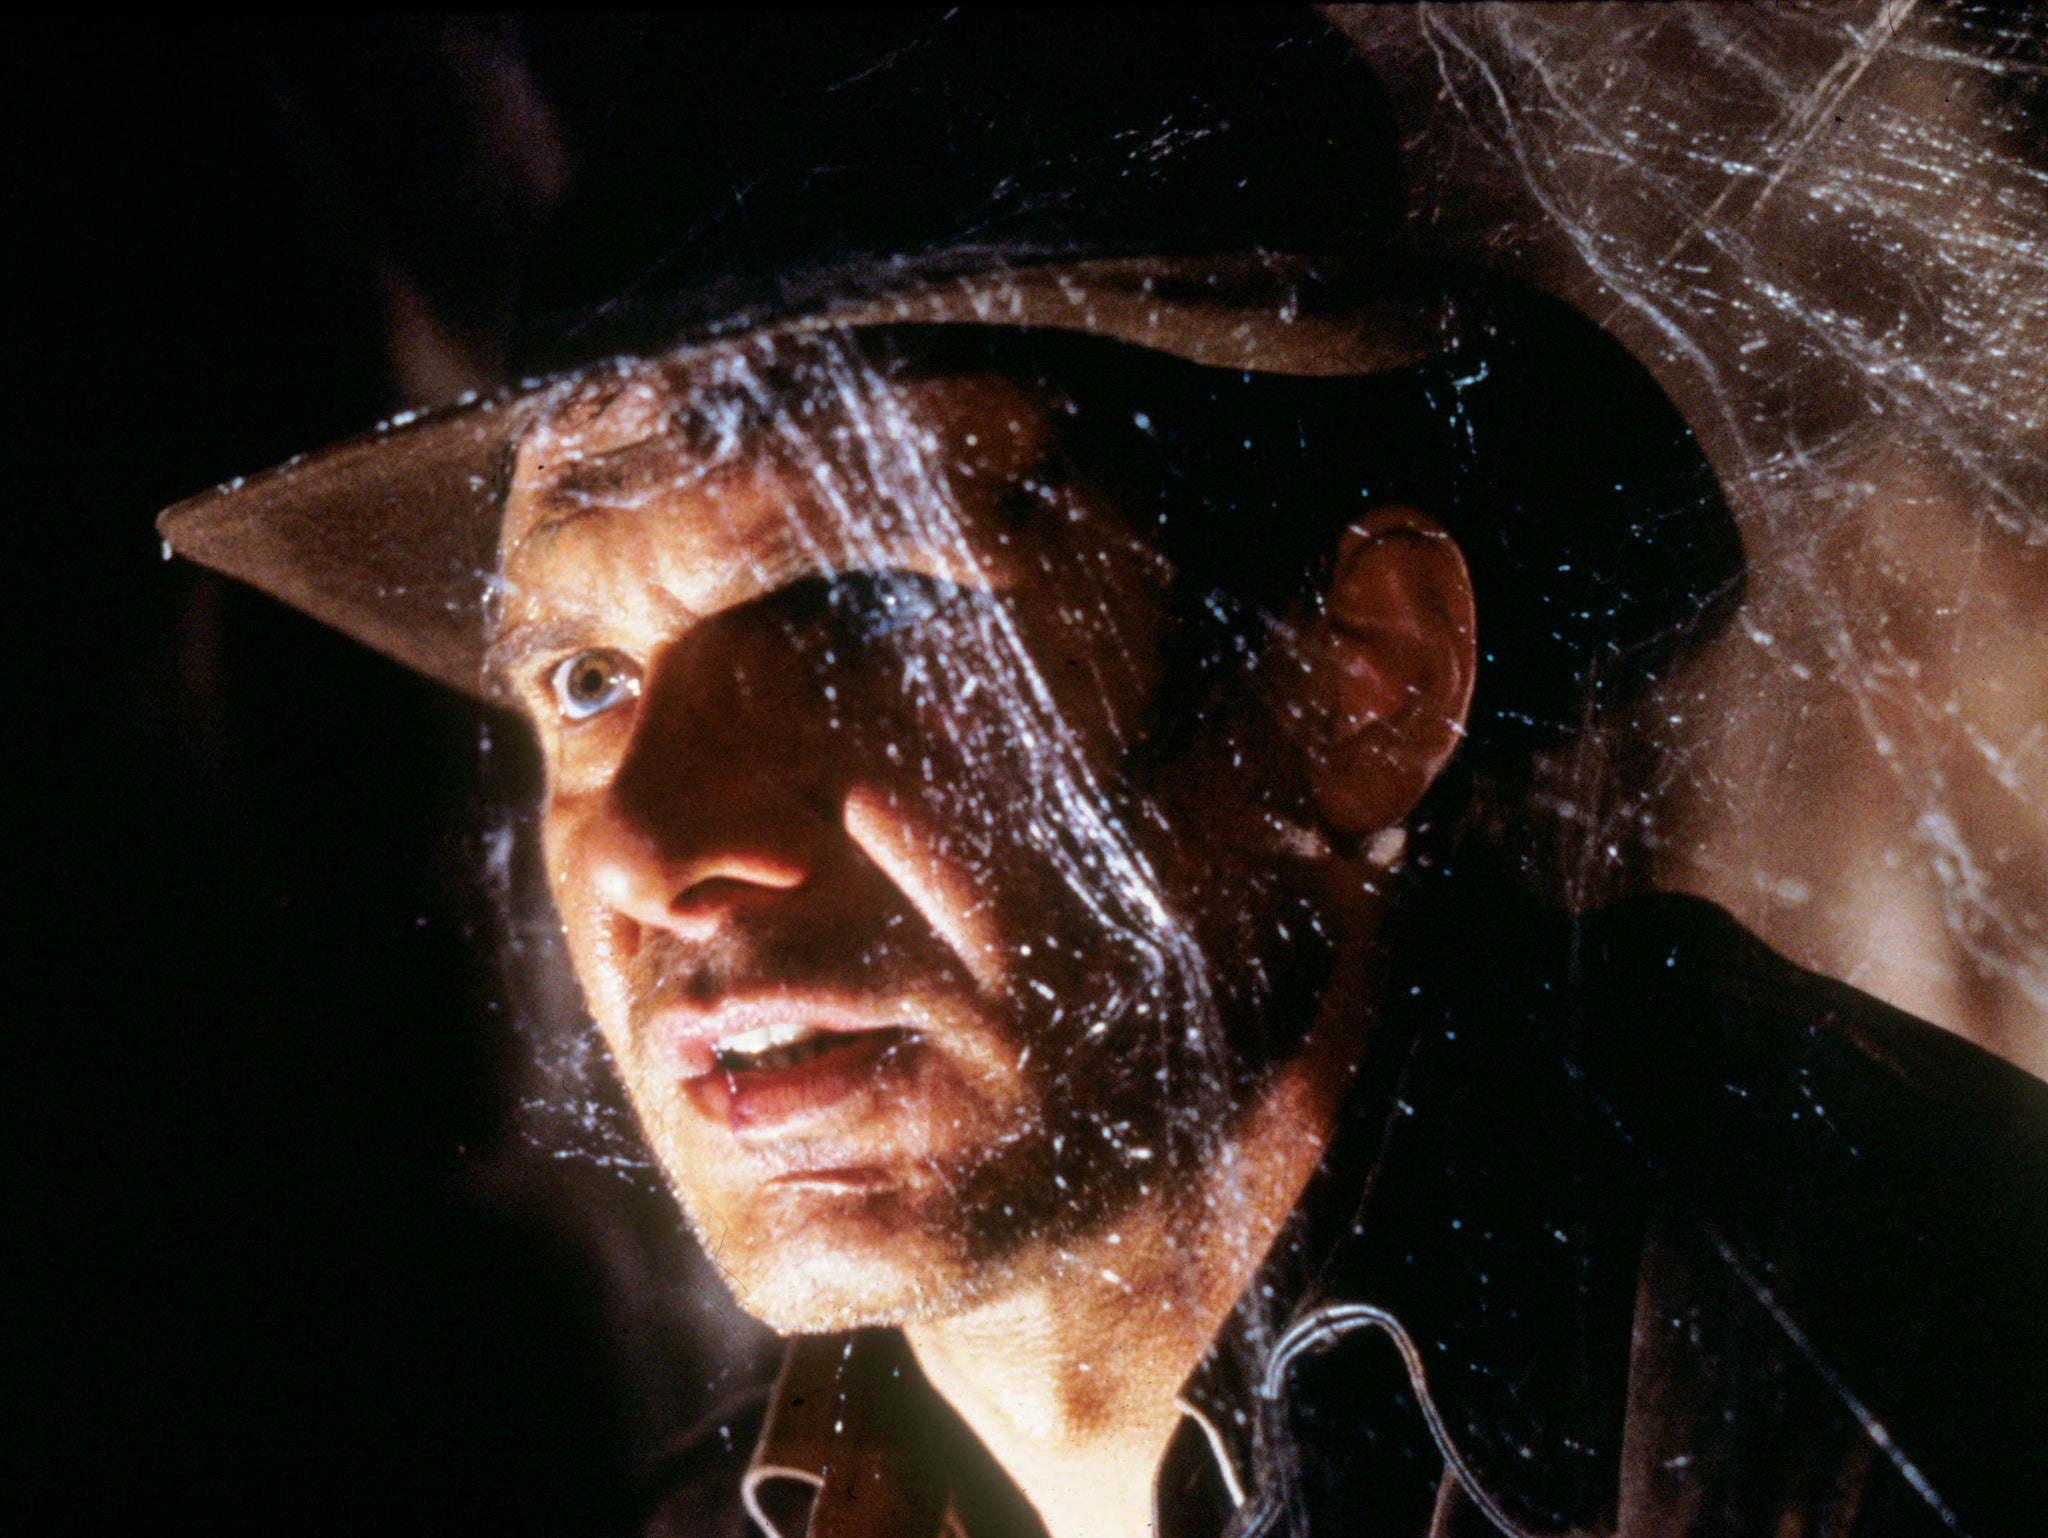 Ruins, rejection and daddy issues: The inside story of 'Indiana Jones and the Last Crusade'